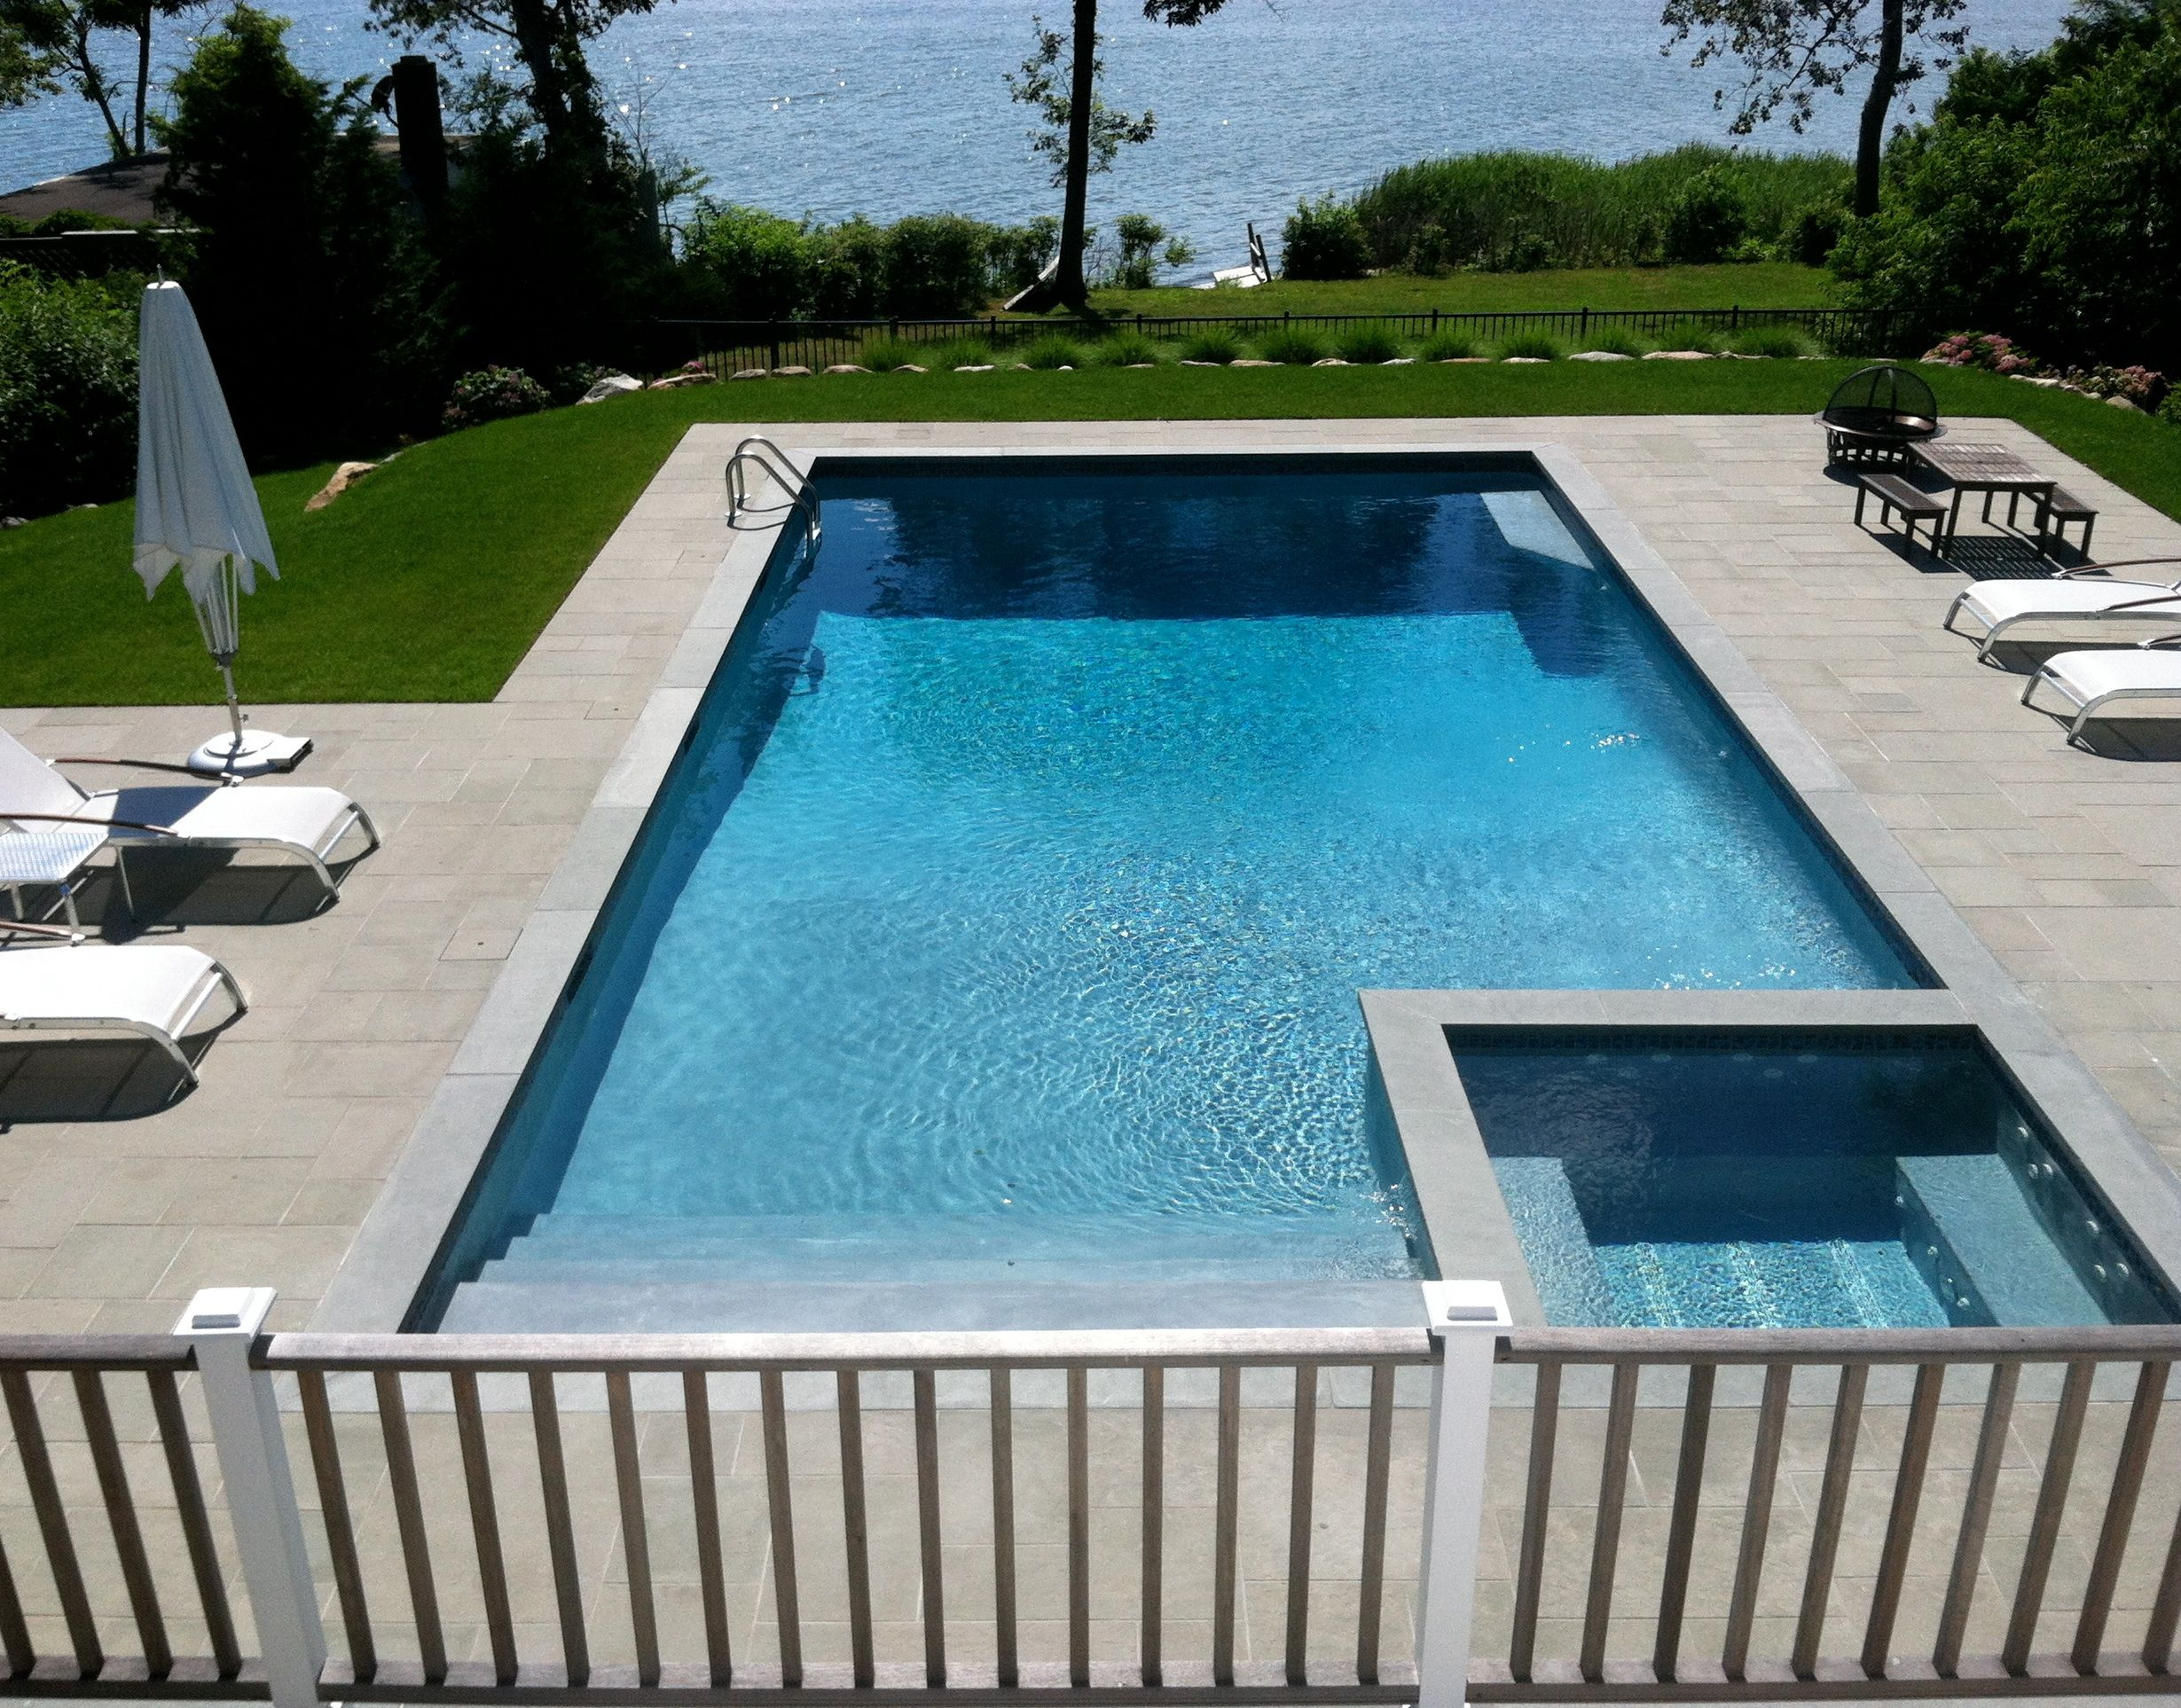 Pool over flow spa bluestone patio and retaining walls